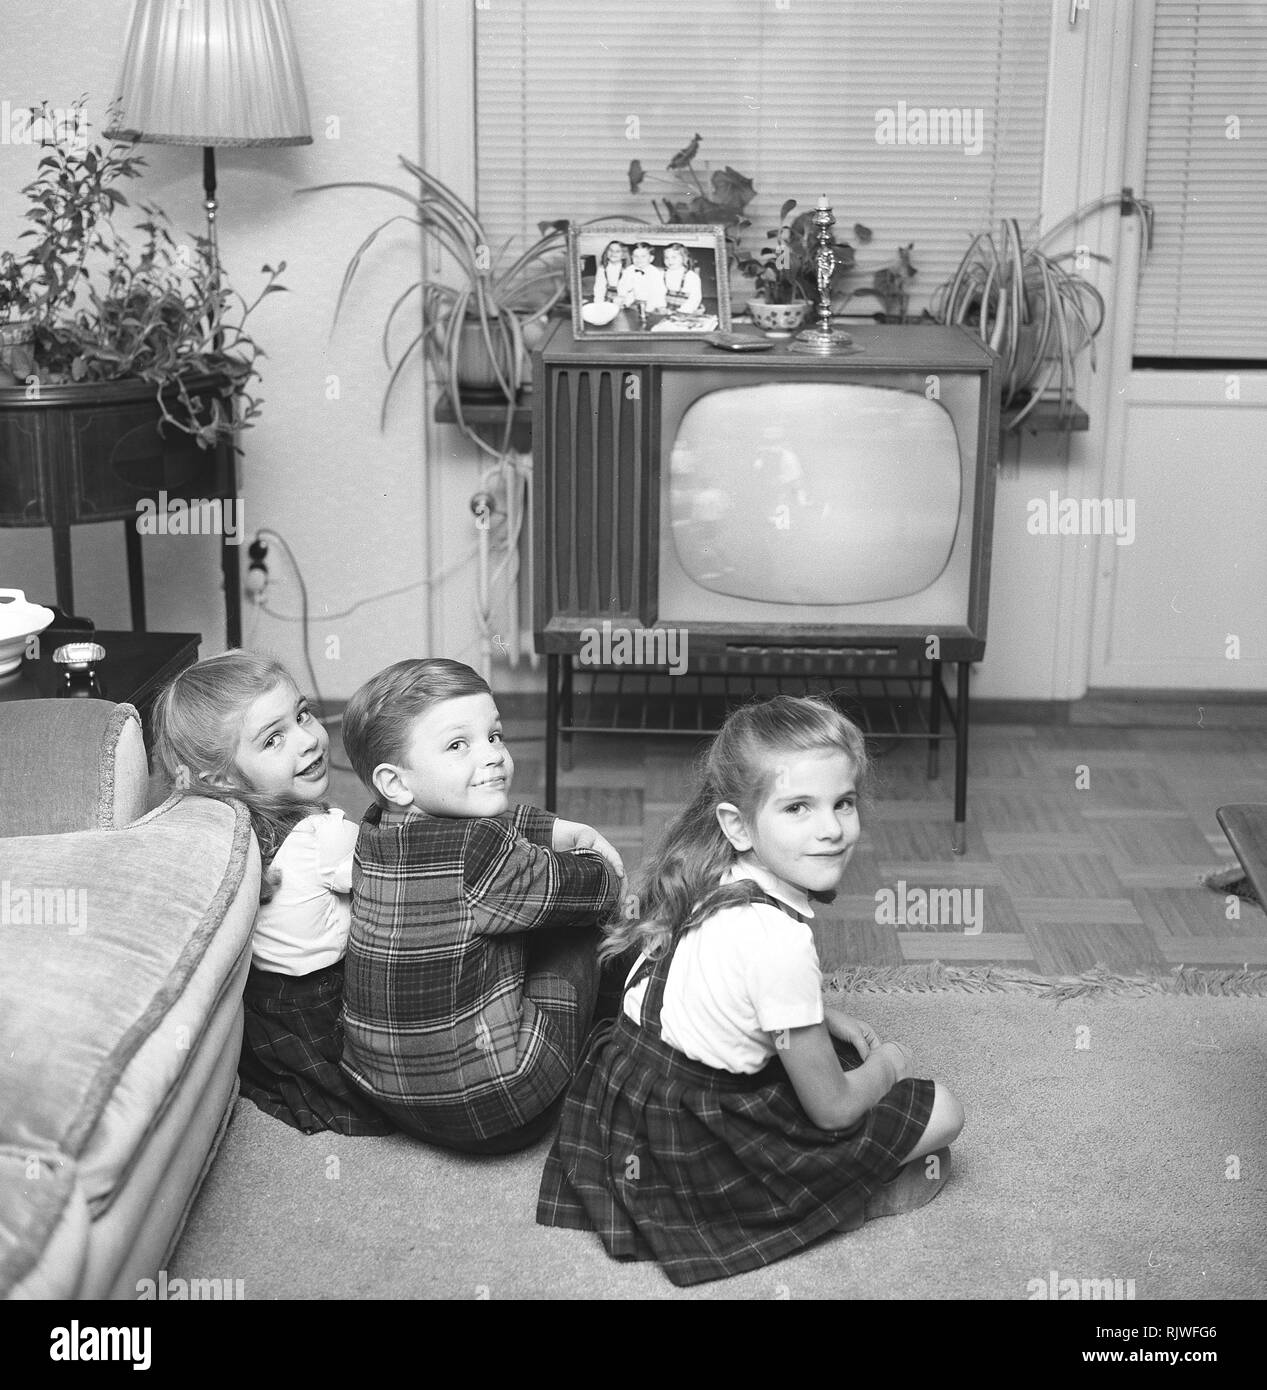 Television in the 1950s. Three children are sitting in front of a television set watching the program. Photo Kristoffersson ref CL23-5 Sweden 1957 - Stock Image